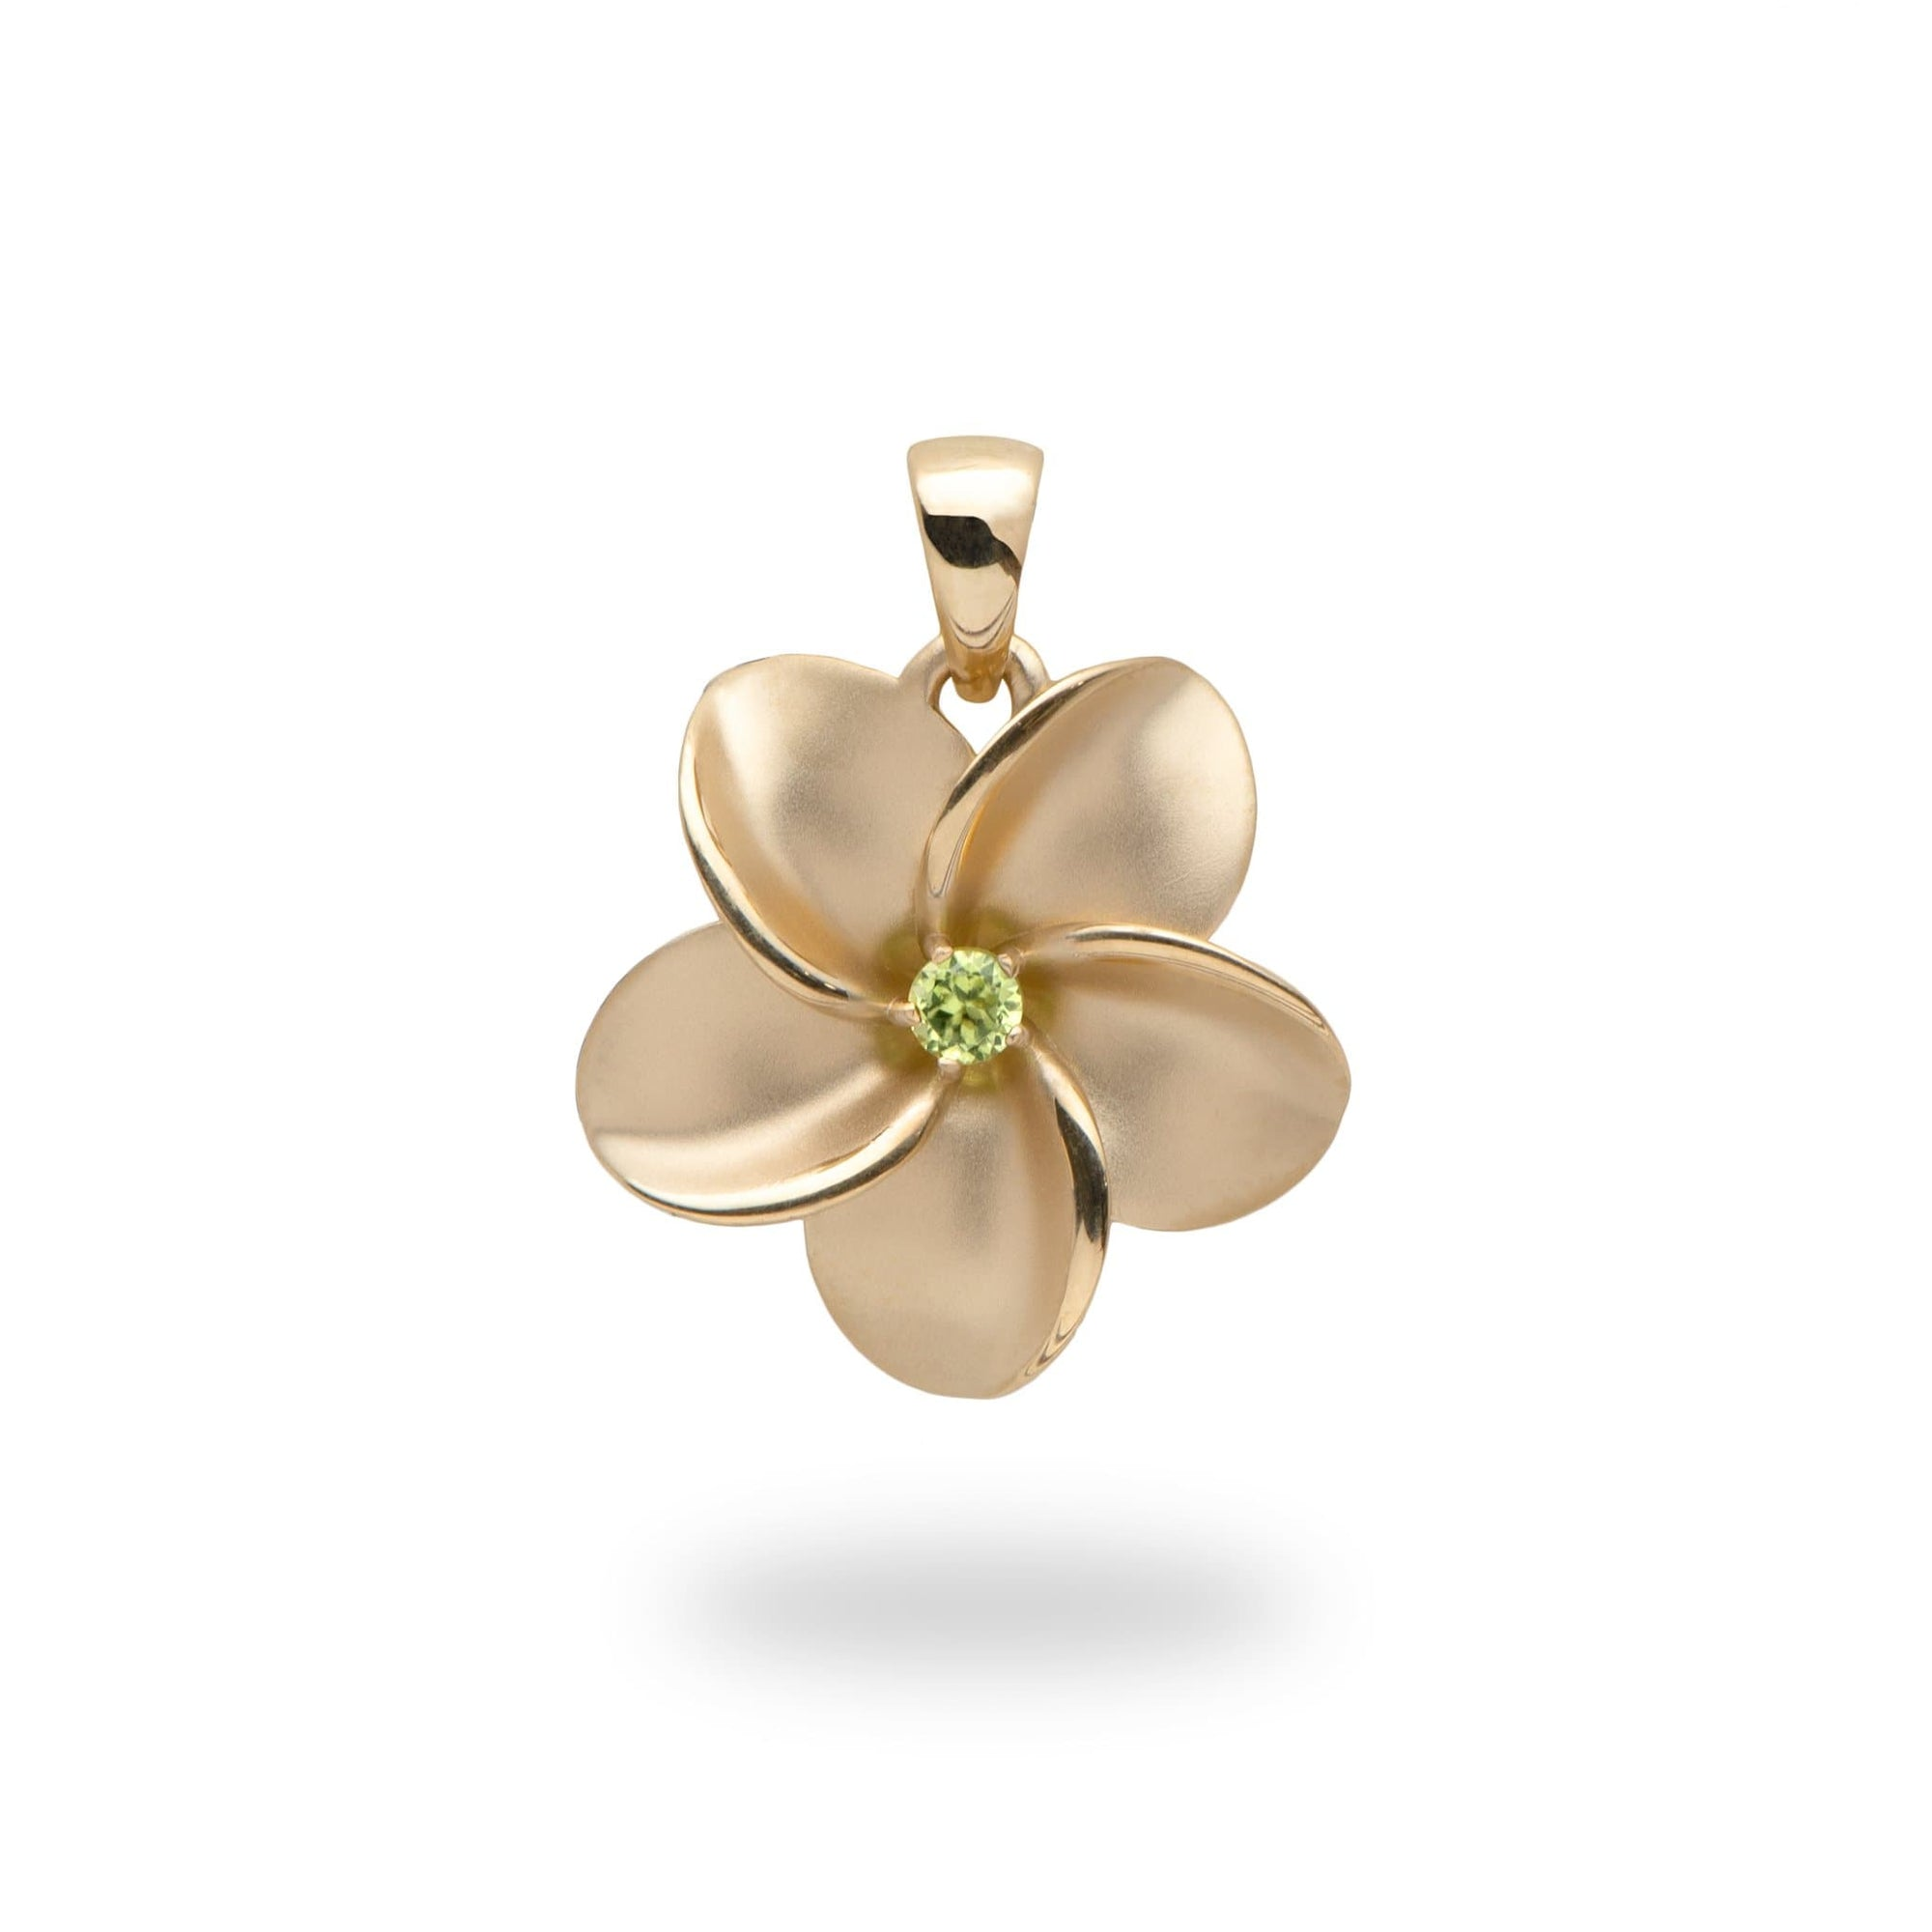 Plumeria Necklace in 14K Yellow Gold with Peridot accent-011-01673